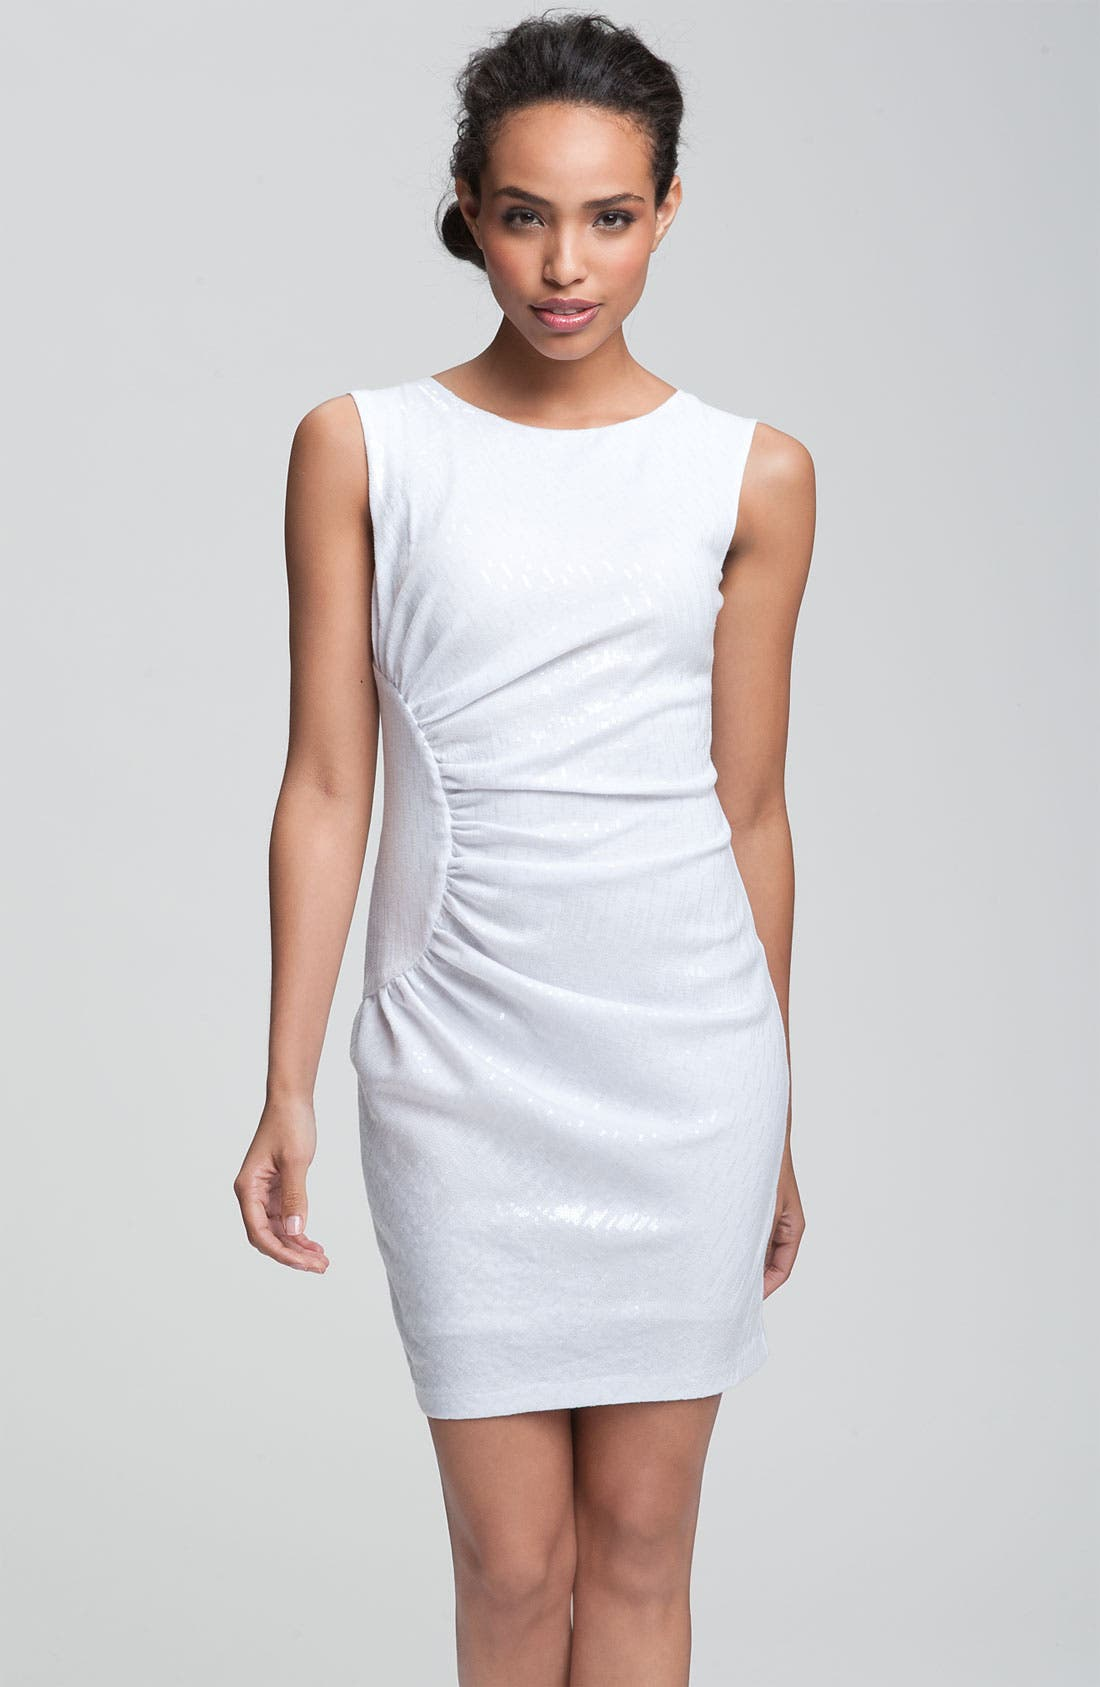 Alternate Image 1 Selected - Alexia Admor Sequined Jersey Knit Sheath Dress